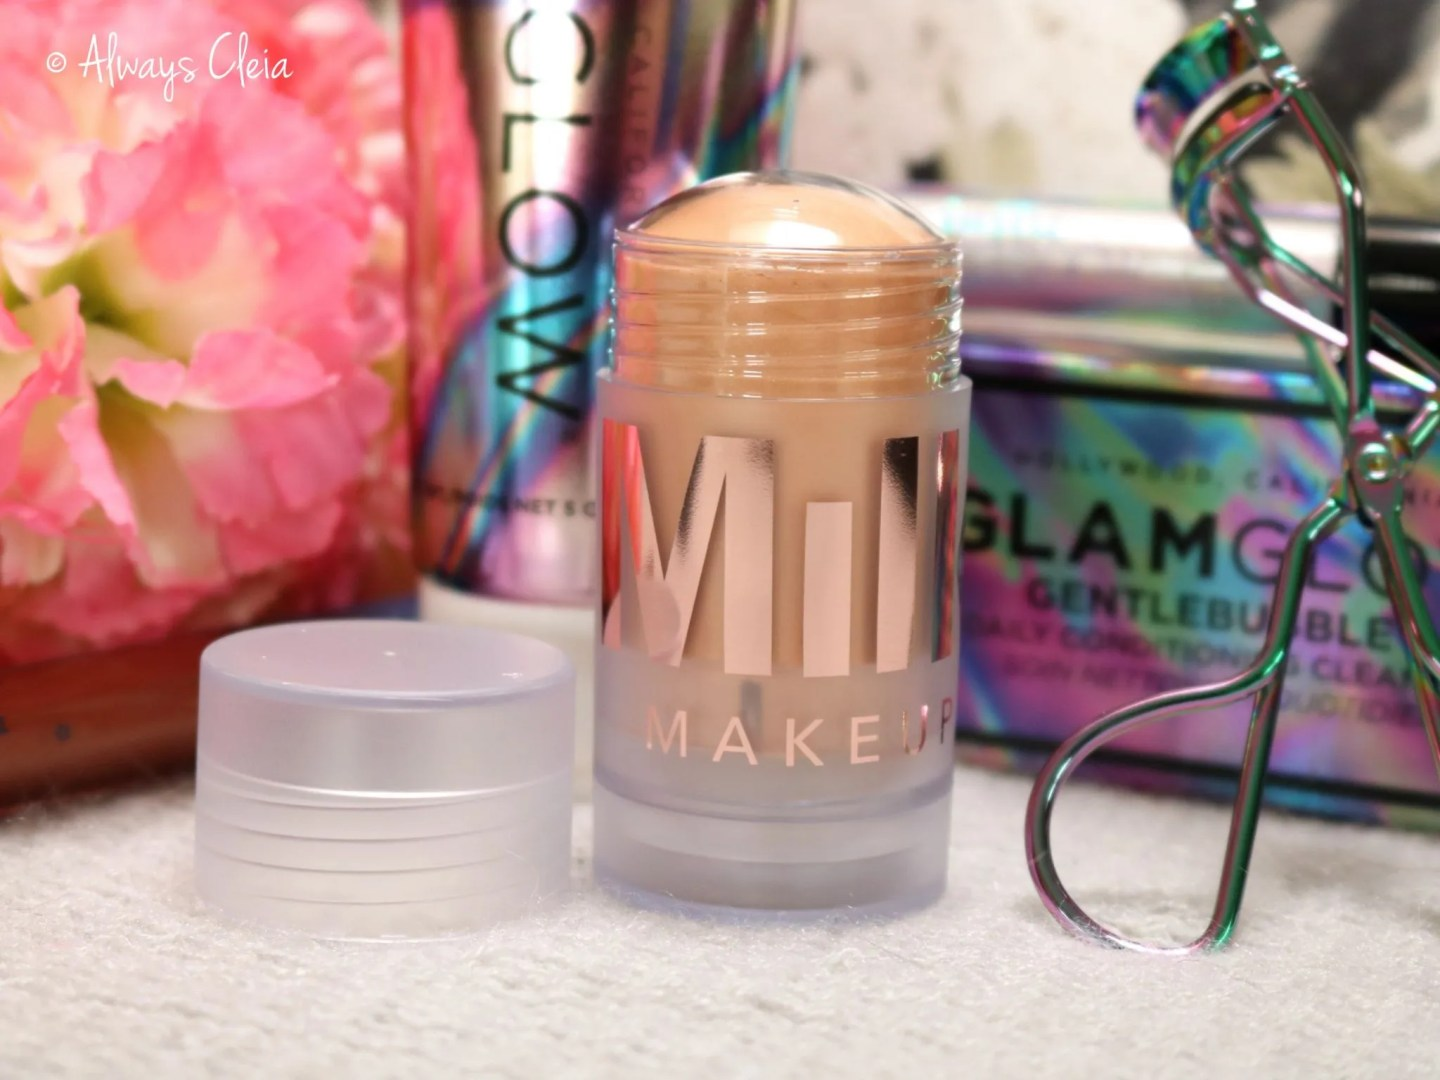 Milk Makeup Luminous Blur Stick